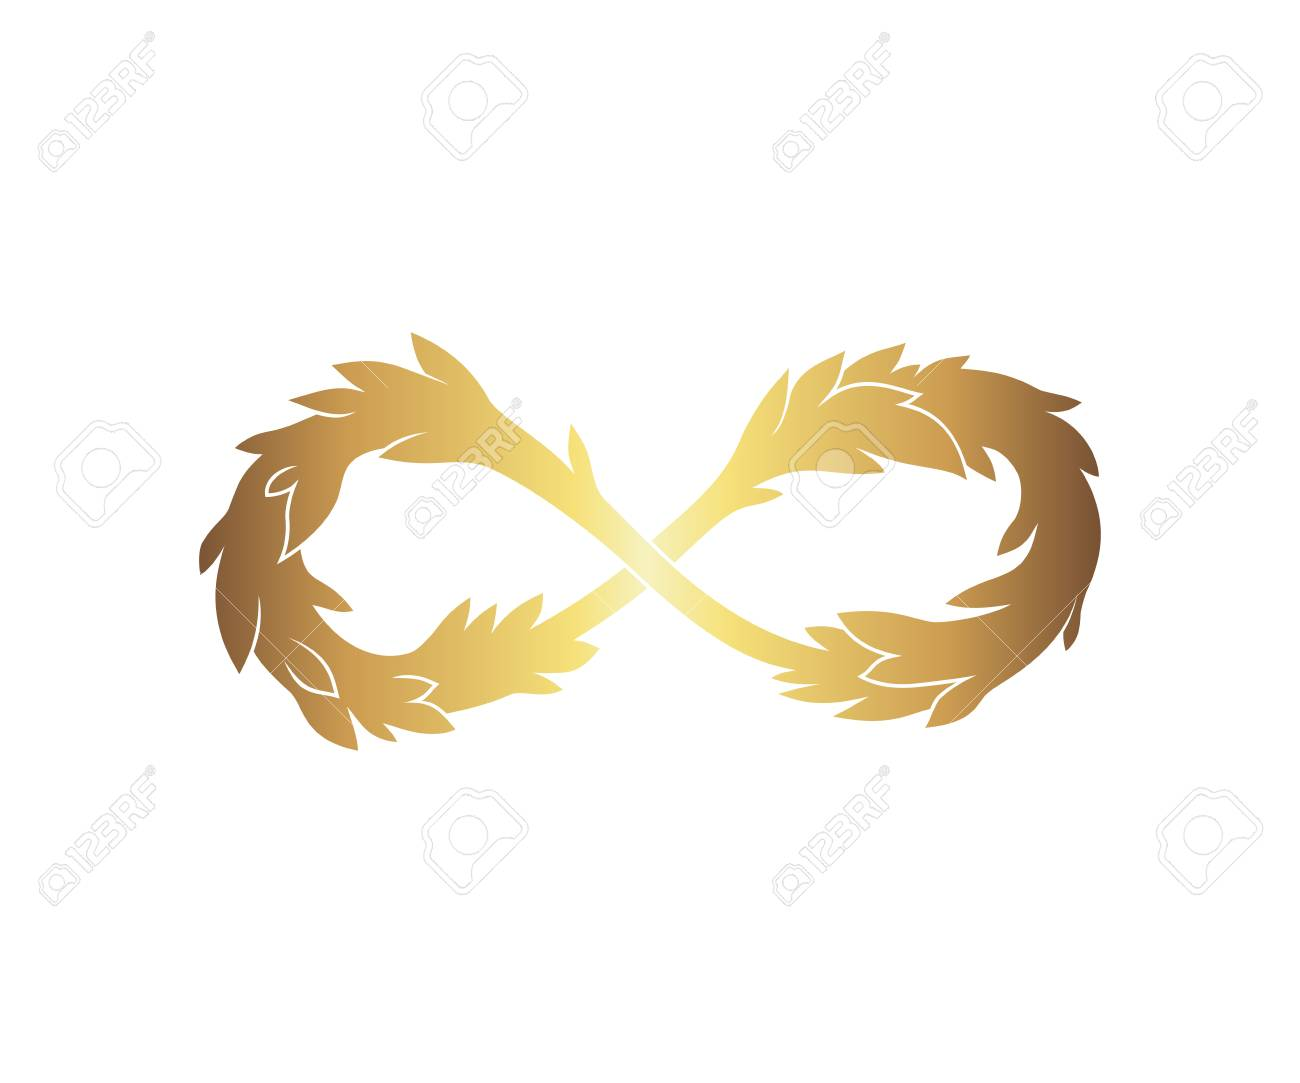 Infinity Sign With Leaves Isolated On White Background Royalty Free